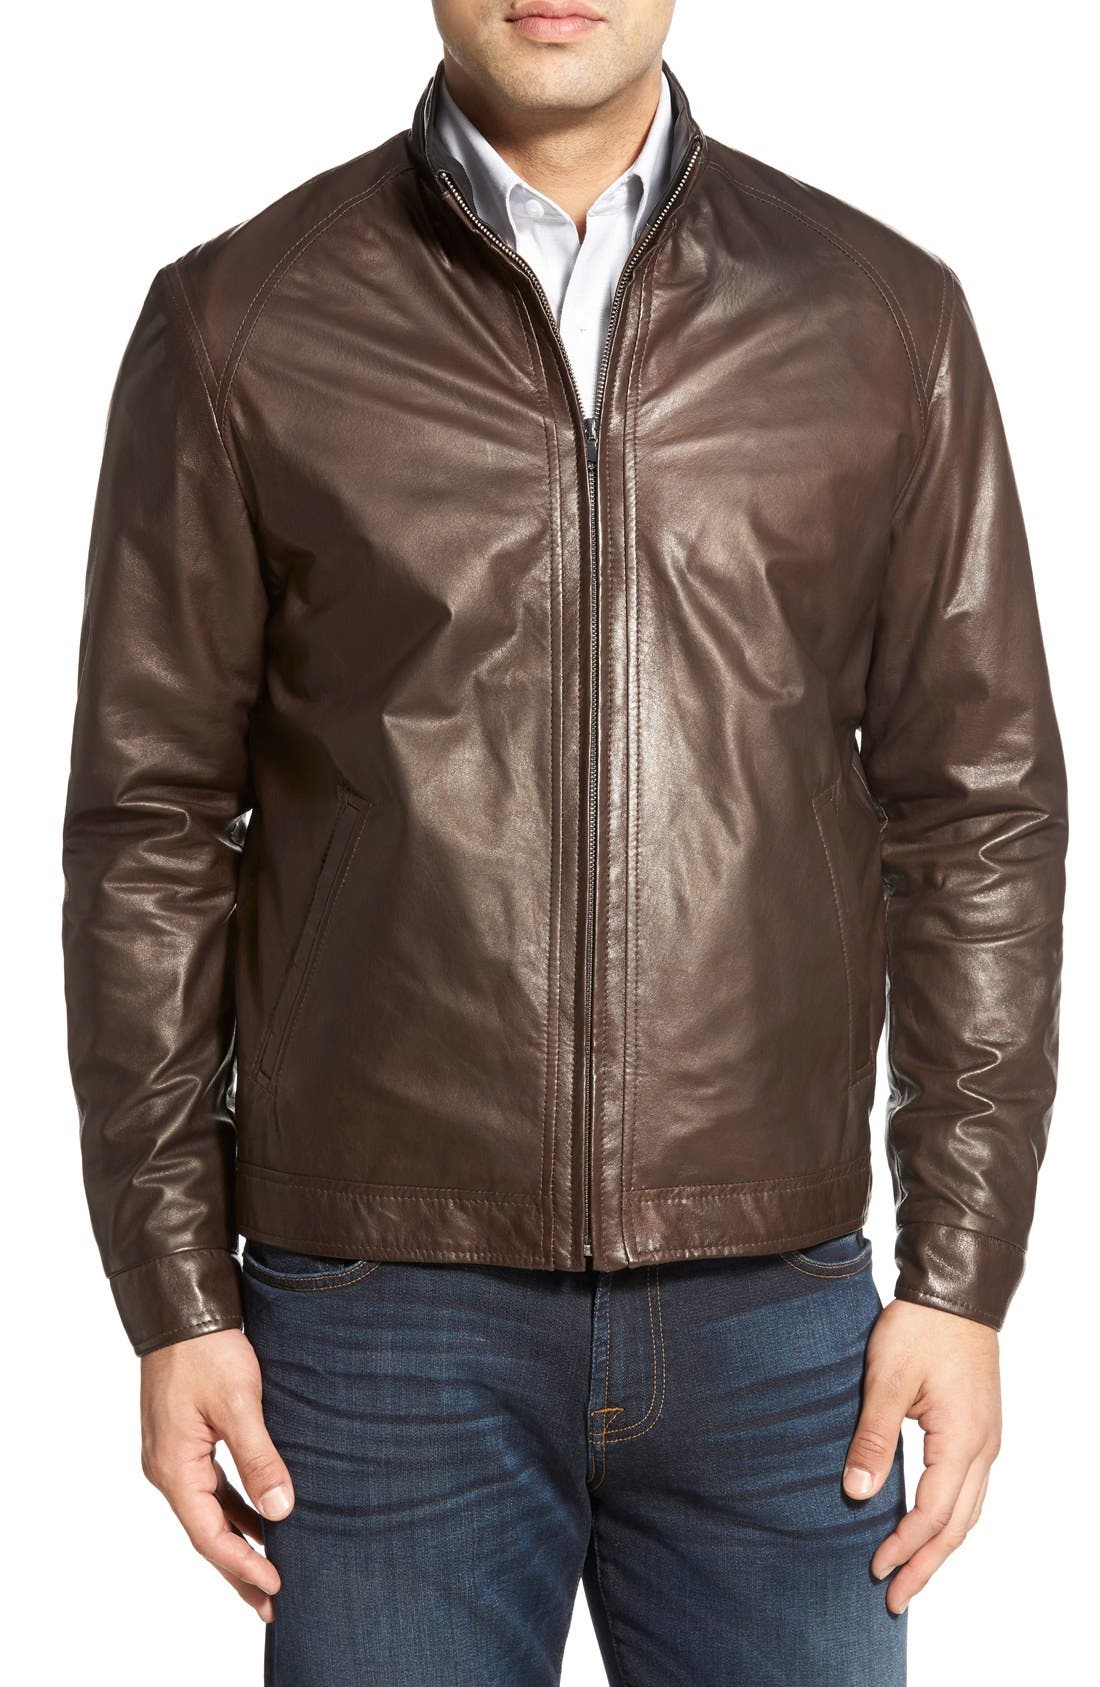 Lambskin Leather Jacket,                             Alternate thumbnail 4, color,                             Coffee